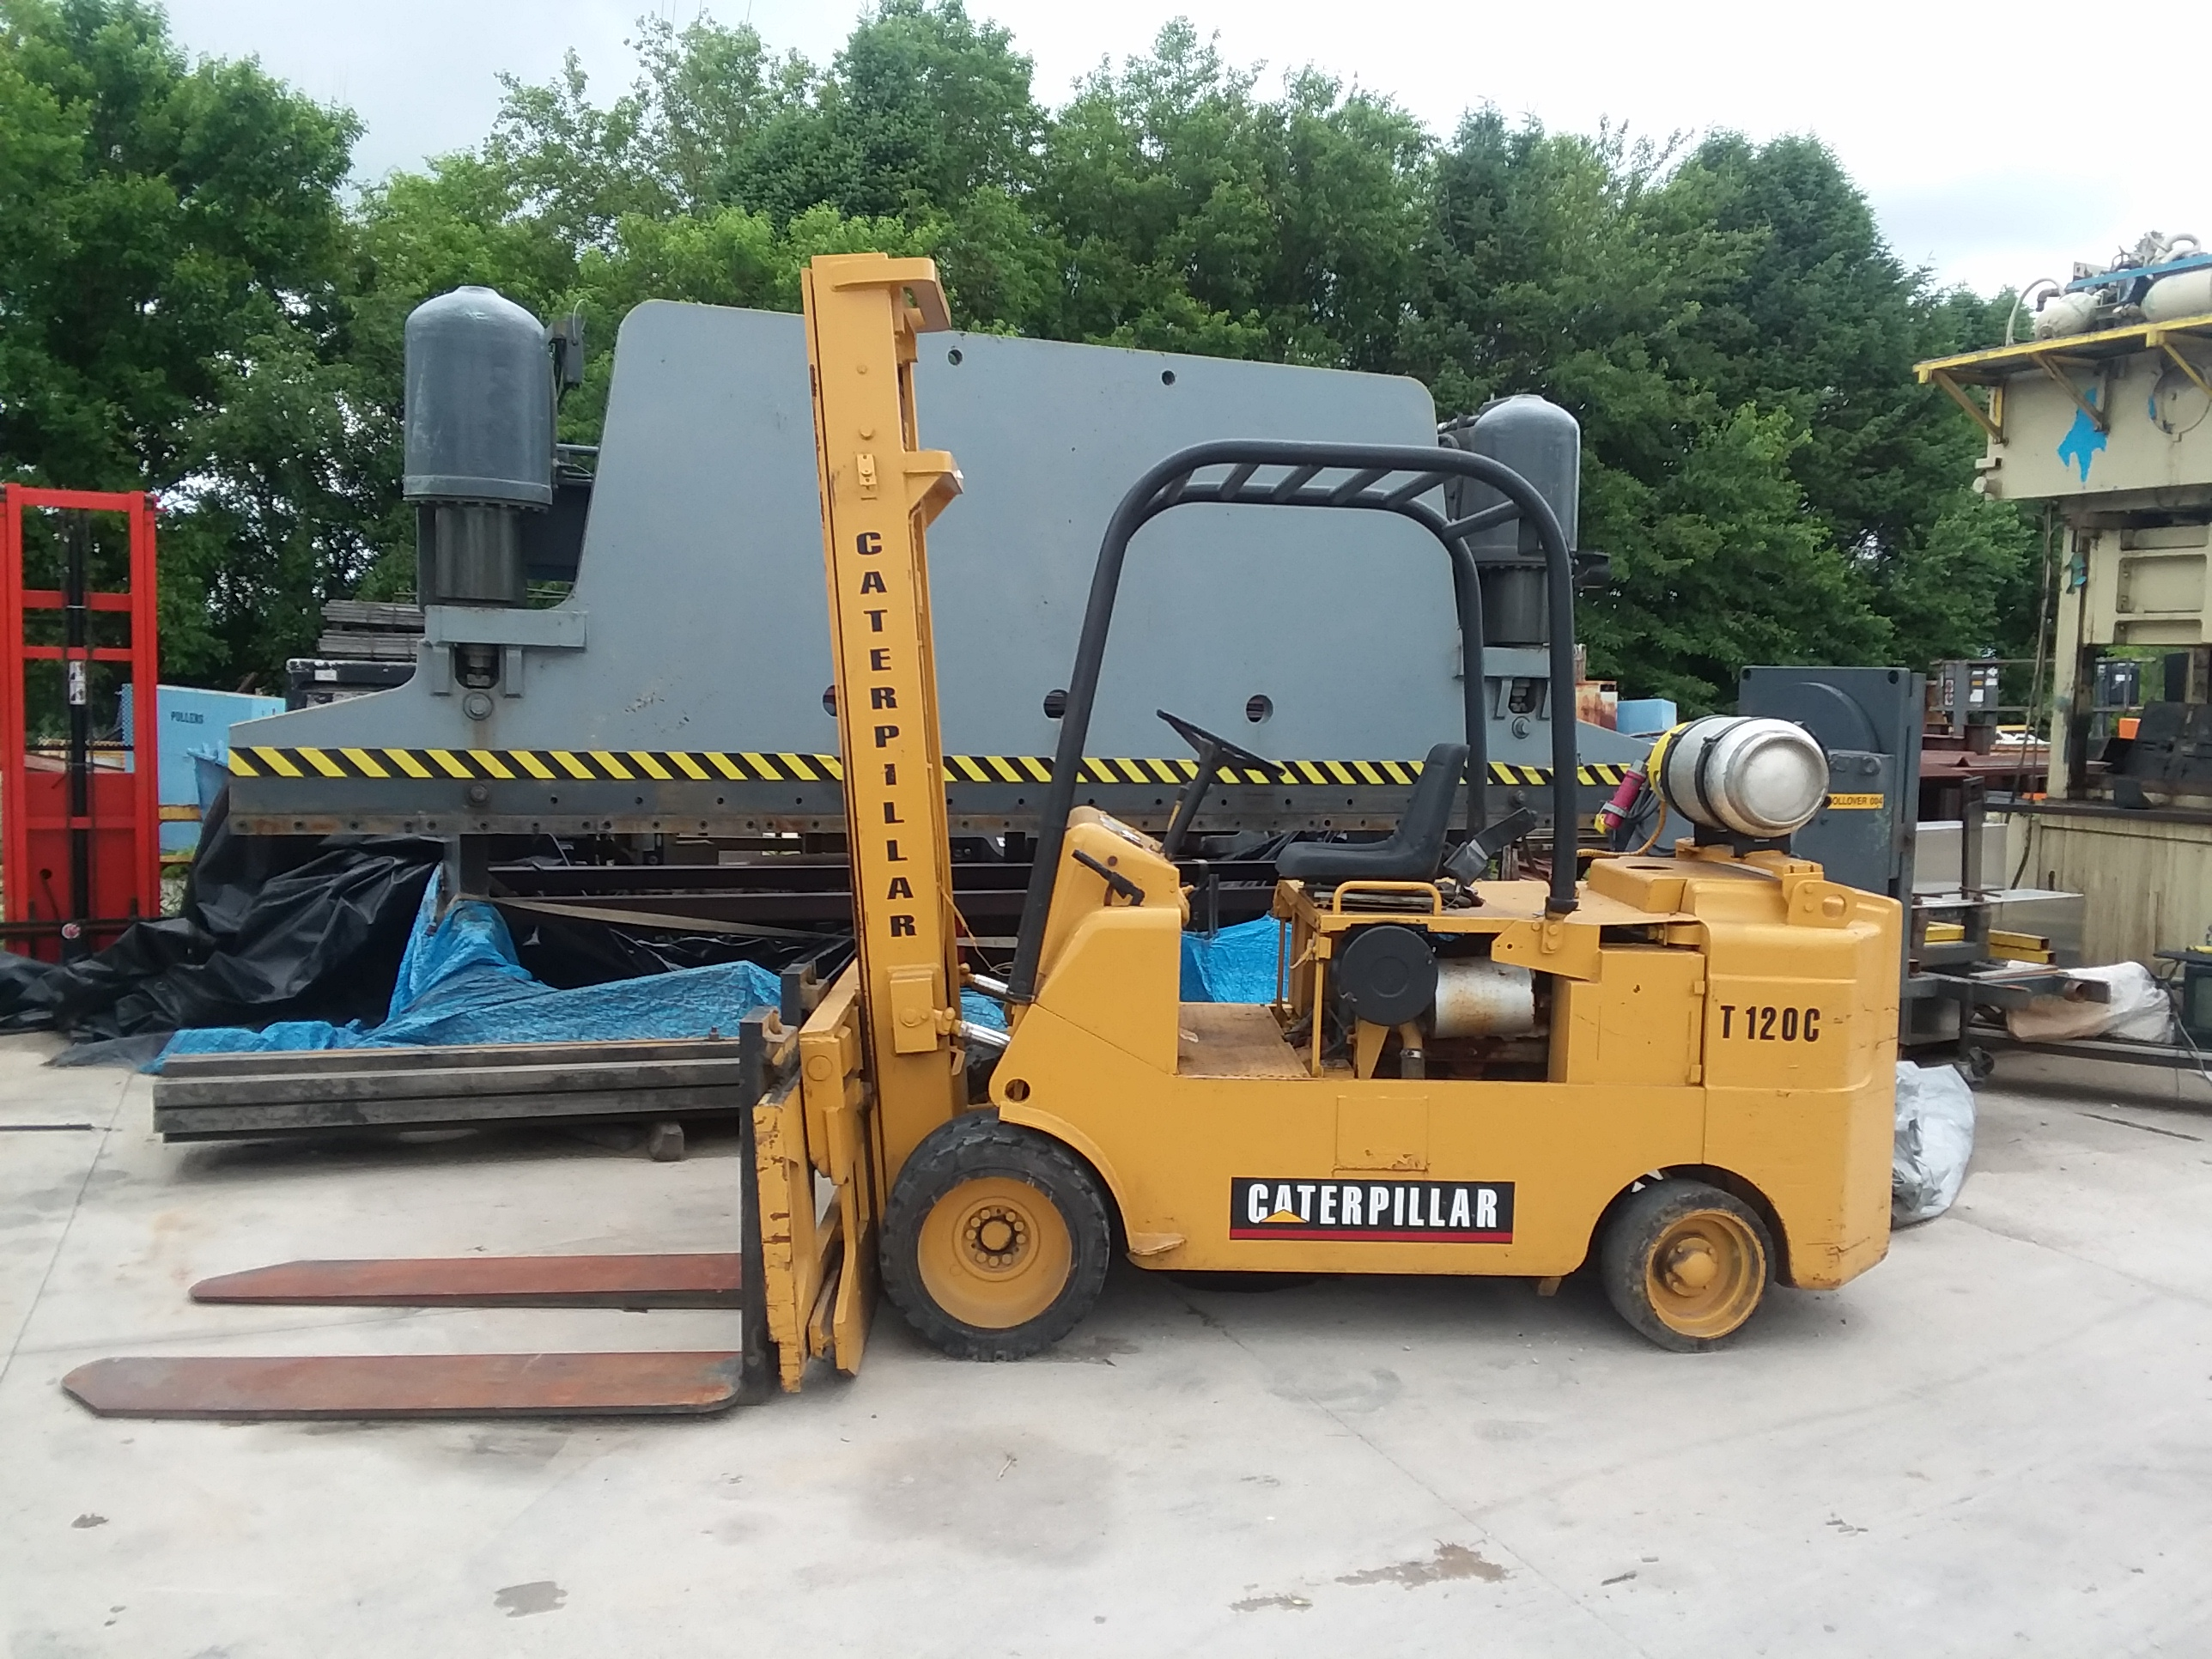 (1) PREOWNED CATERPILLAR 12,000 LBS FORKLIFT, MODEL T120C